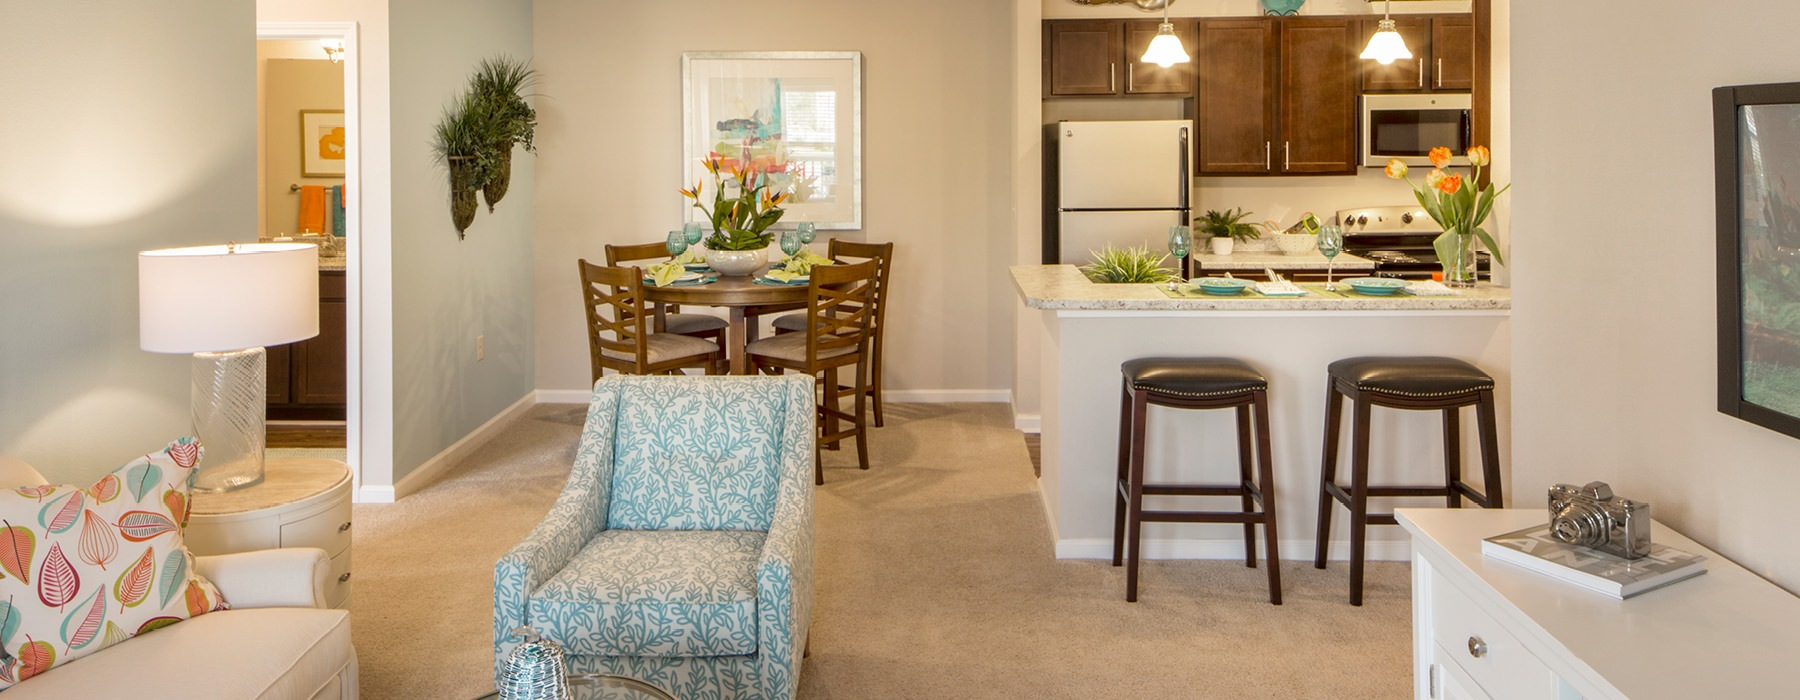 Living room is open to dining area and kitchen